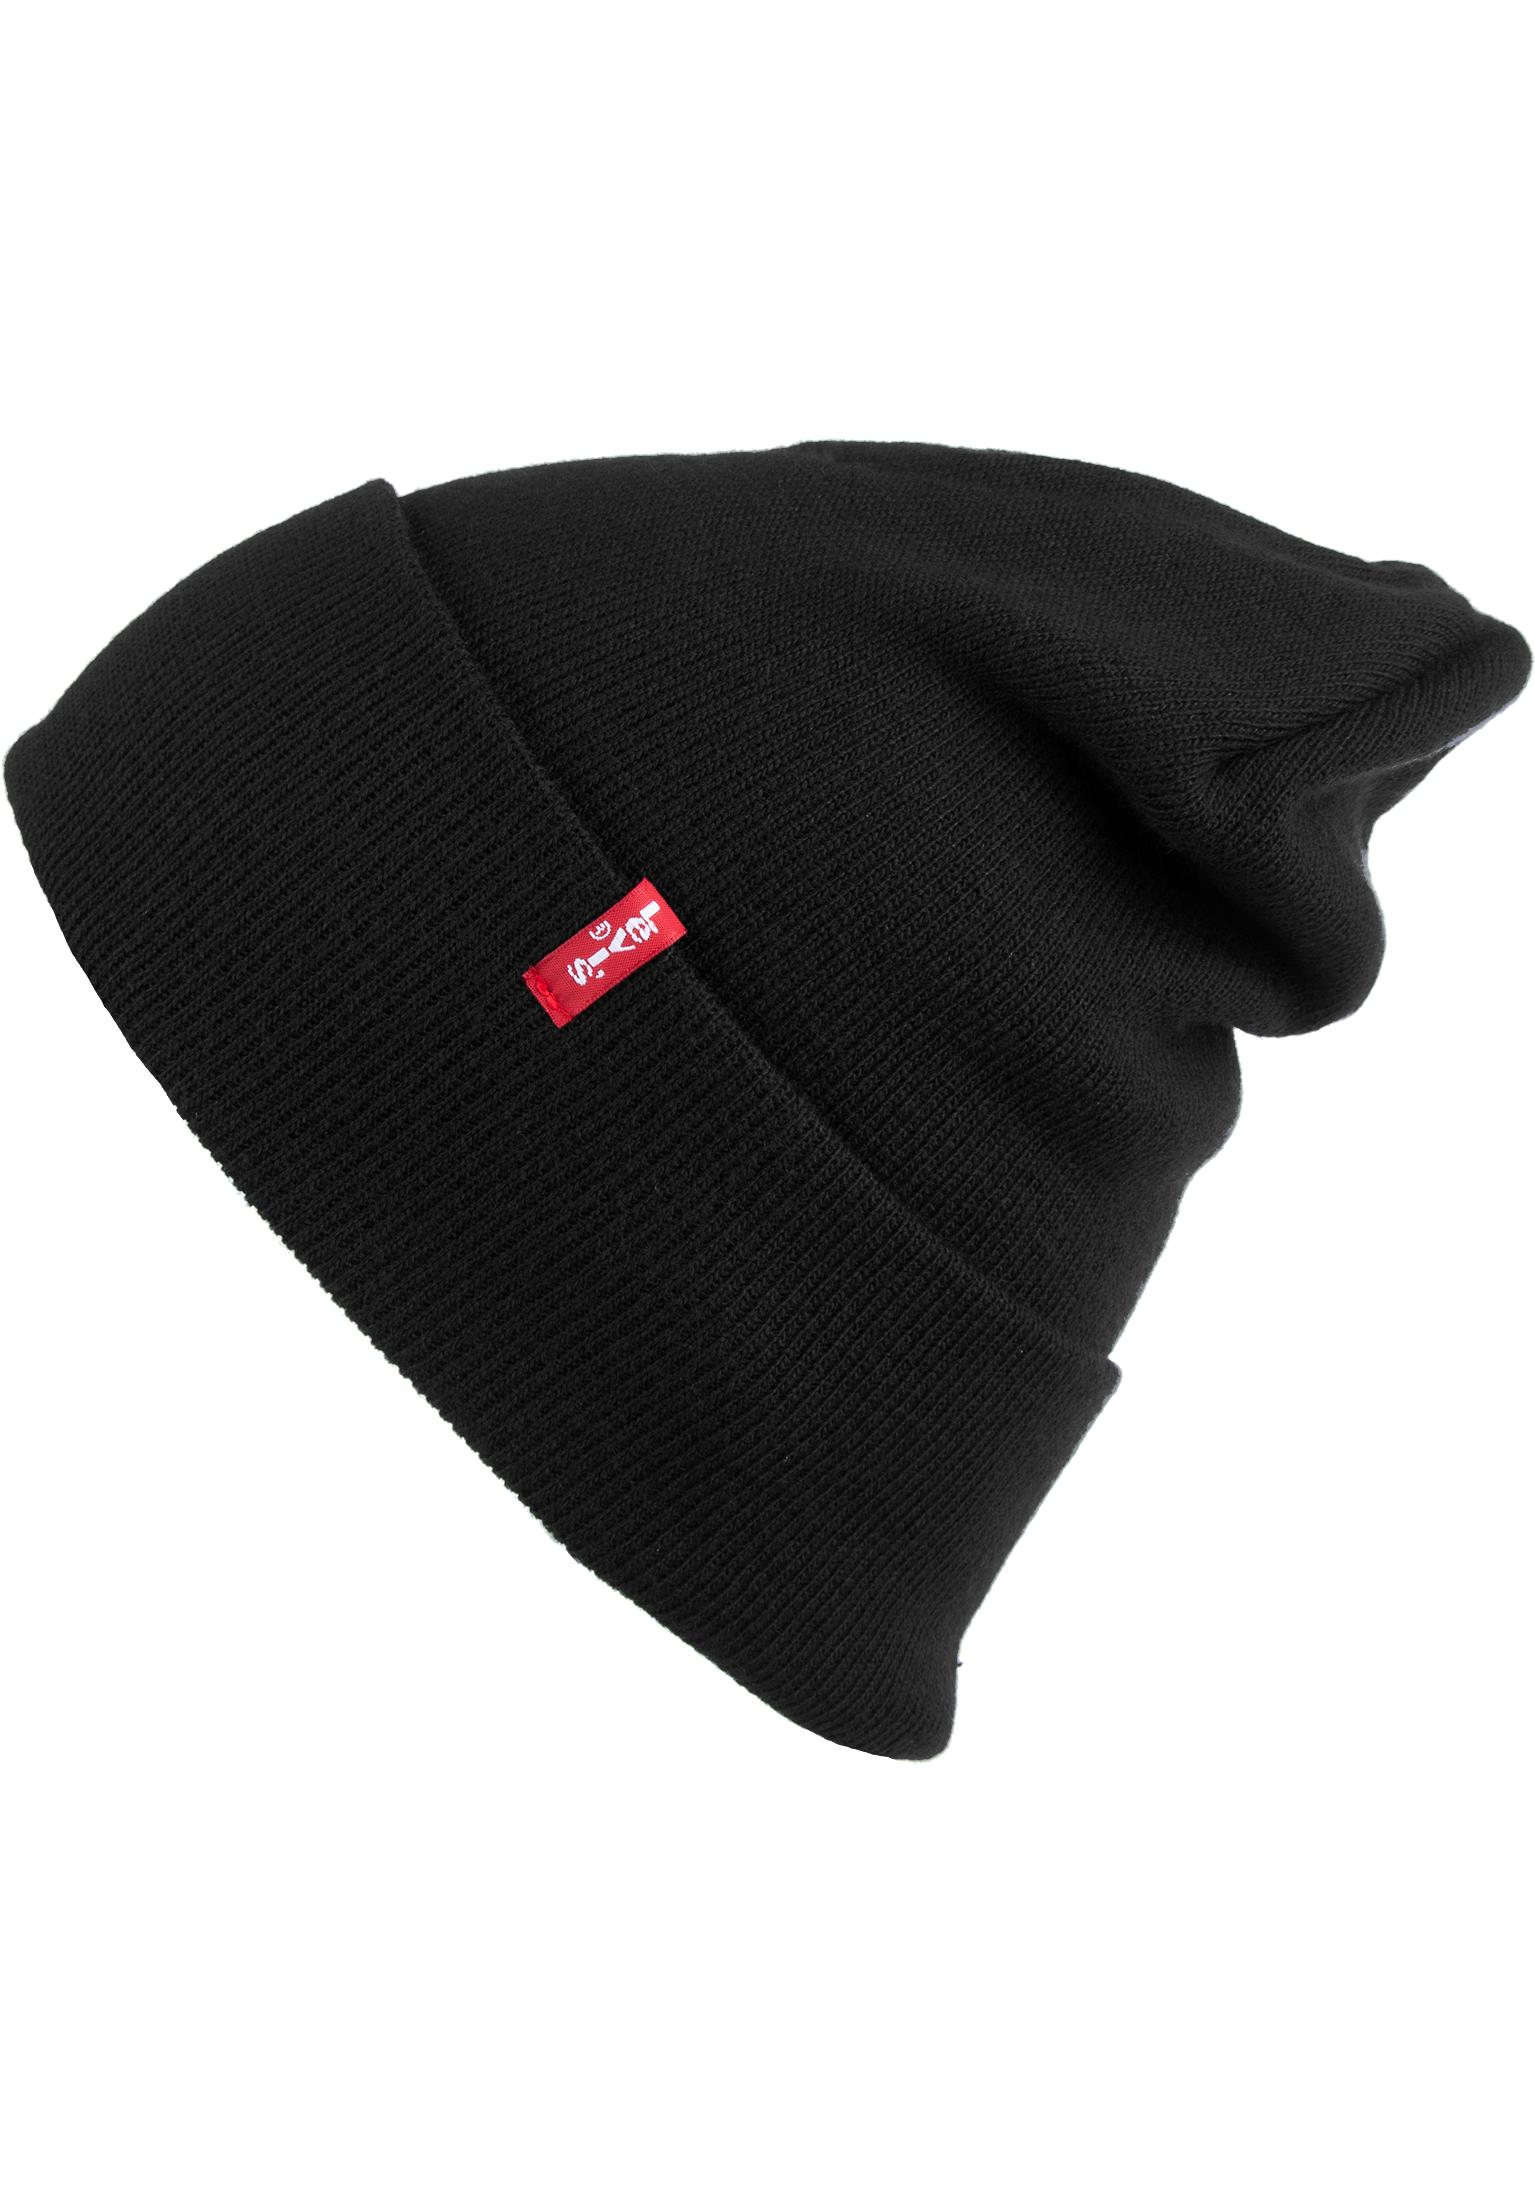 32f3fb0002f Slouchy Red Tab Levi s® Beanies in black for Men